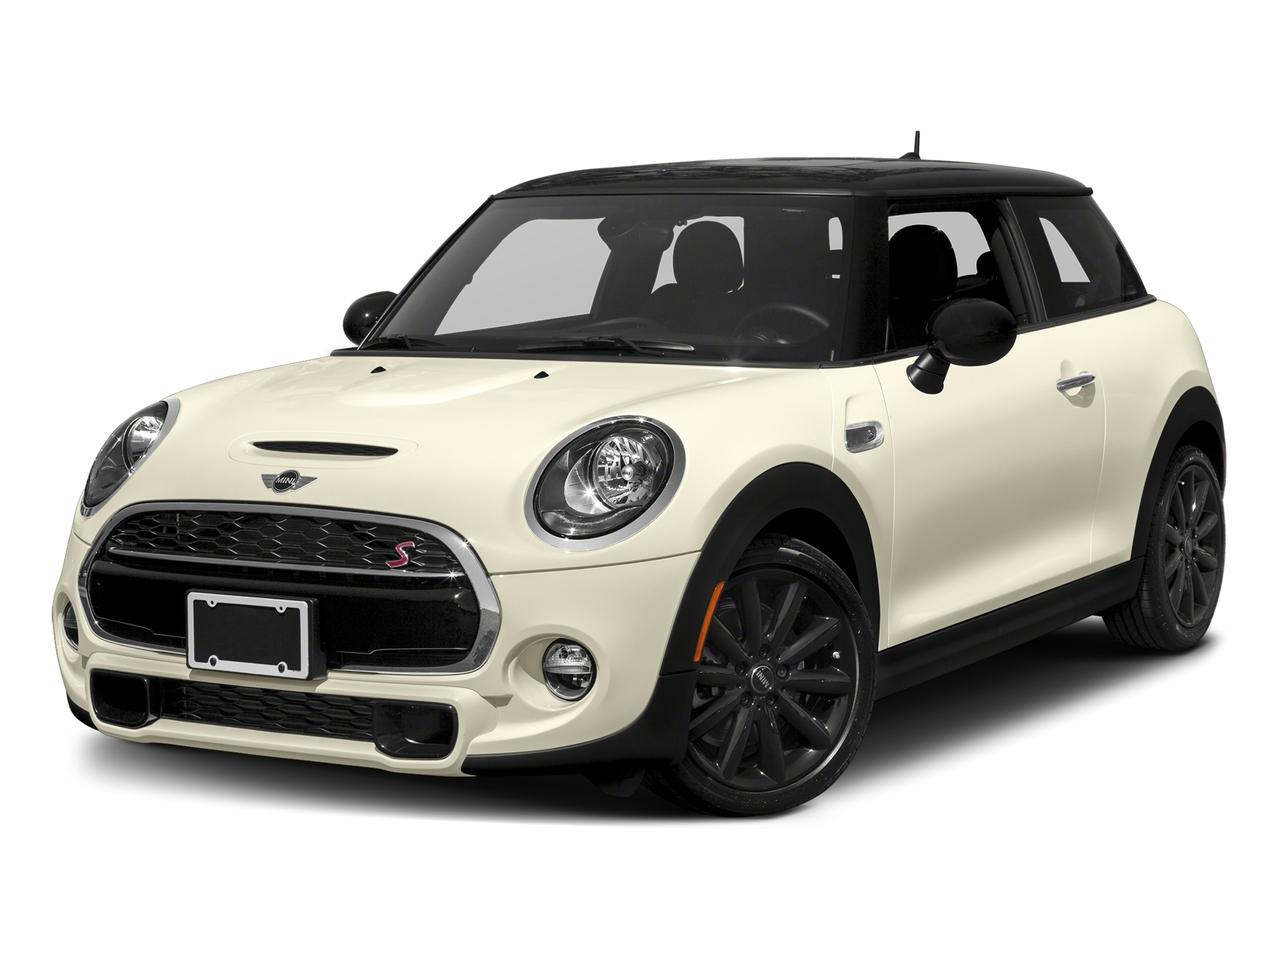 2018 MINI Cooper S Hardtop Vehicle Photo in Spokane, WA 99207